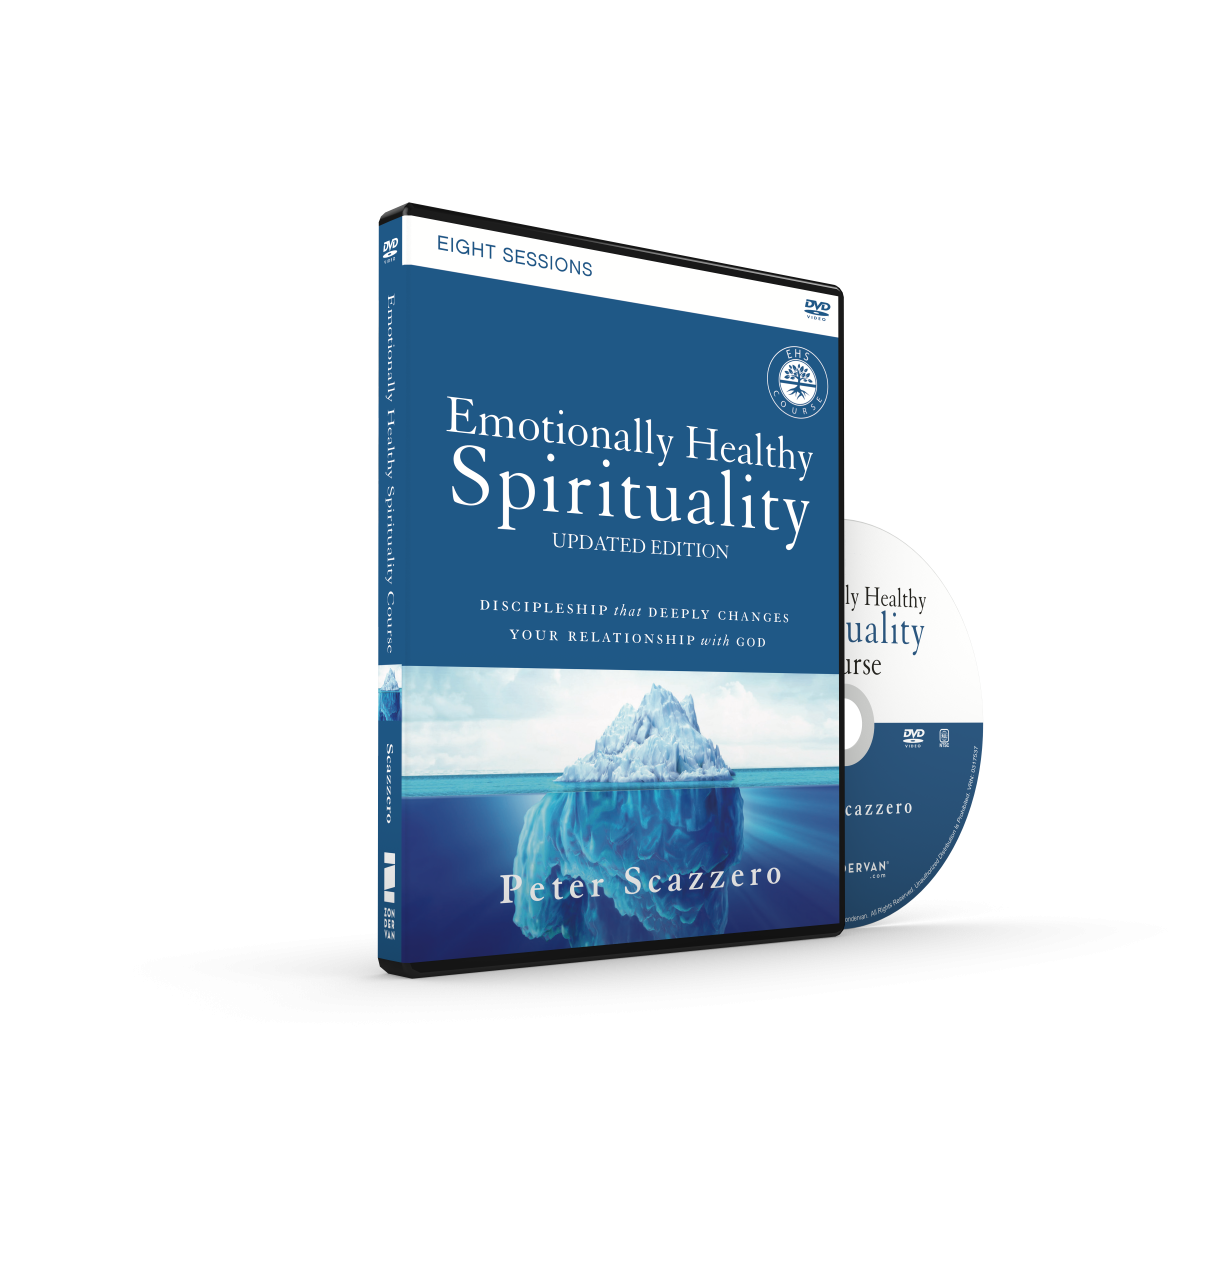 Emotionally Healthy Spirituality Downloadable Streaming Video Product Image